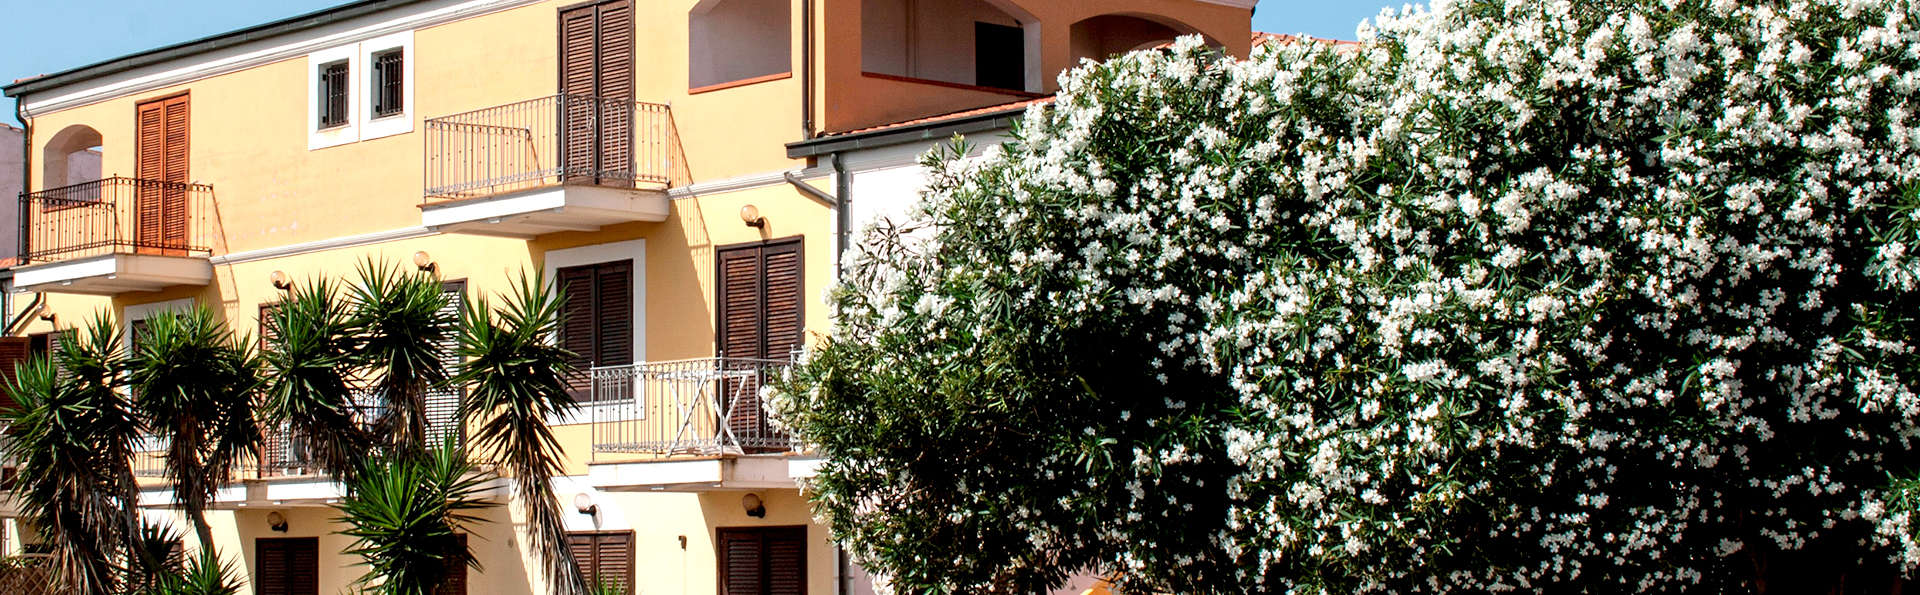 Residence Le Pavoncelle - Edit_Front.jpg